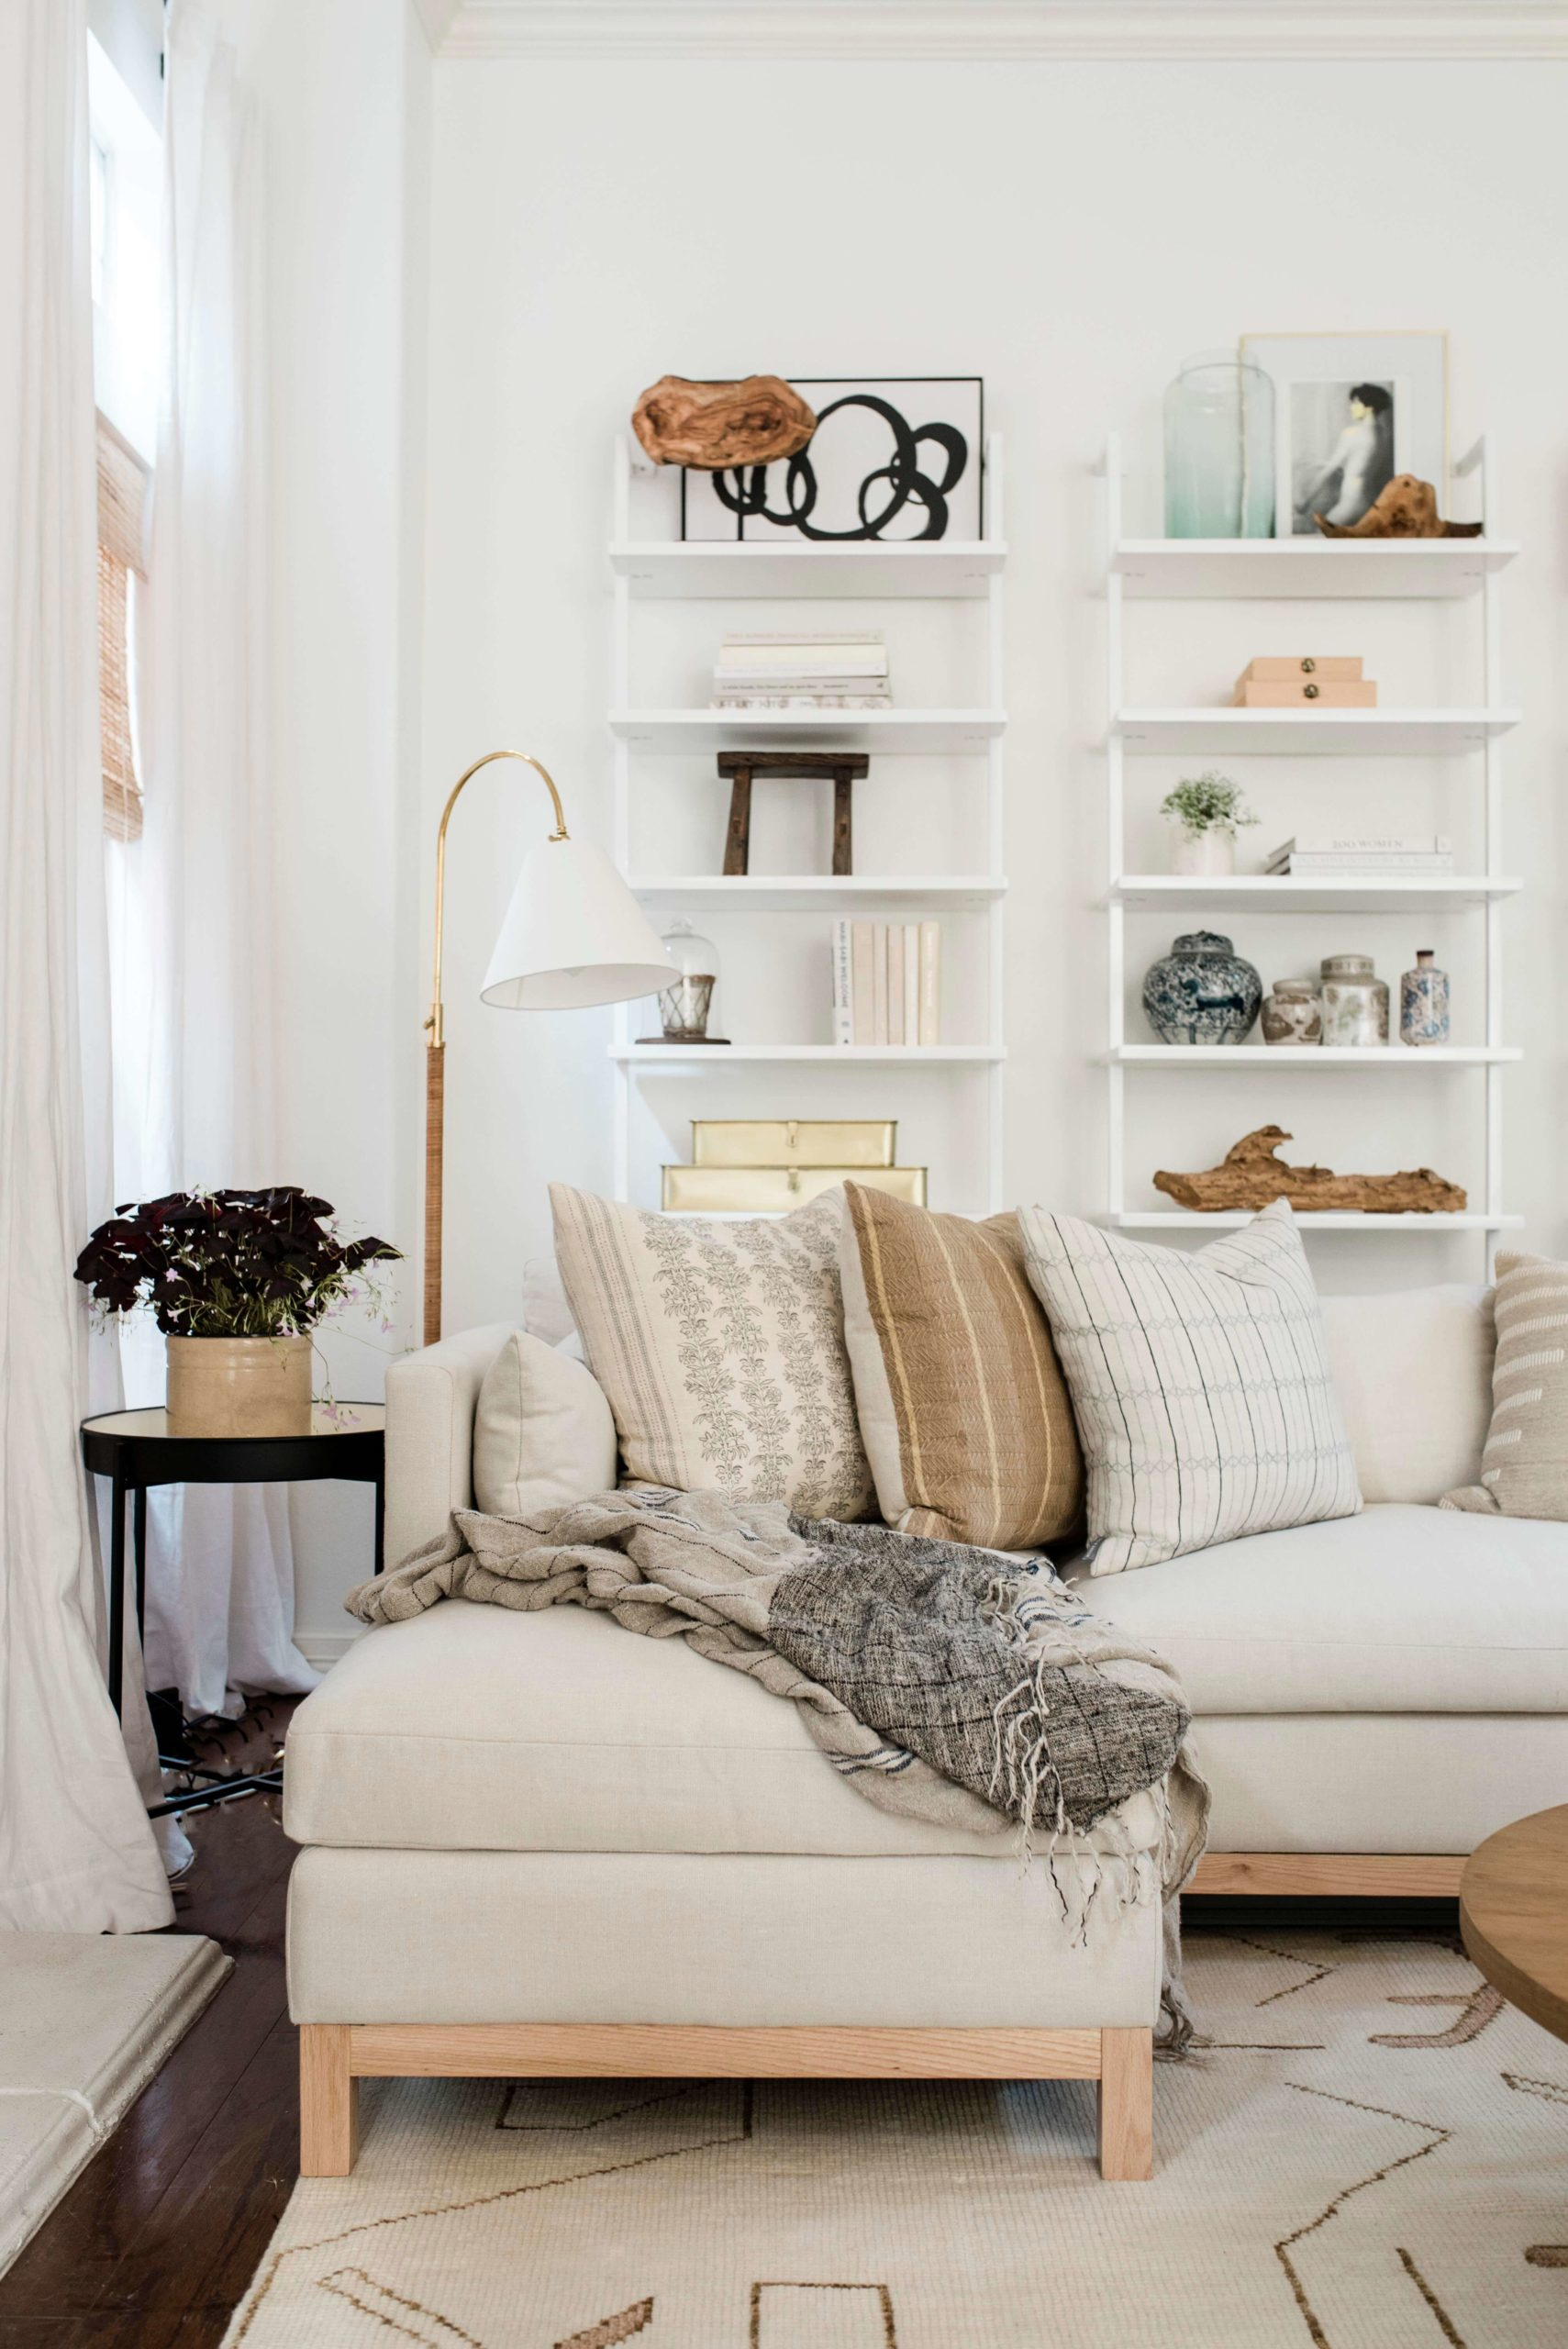 White sectional GMDxLG Furniture Collection Hollingworth Sofa by Los Angeles Designer Ginny Macdonald Design